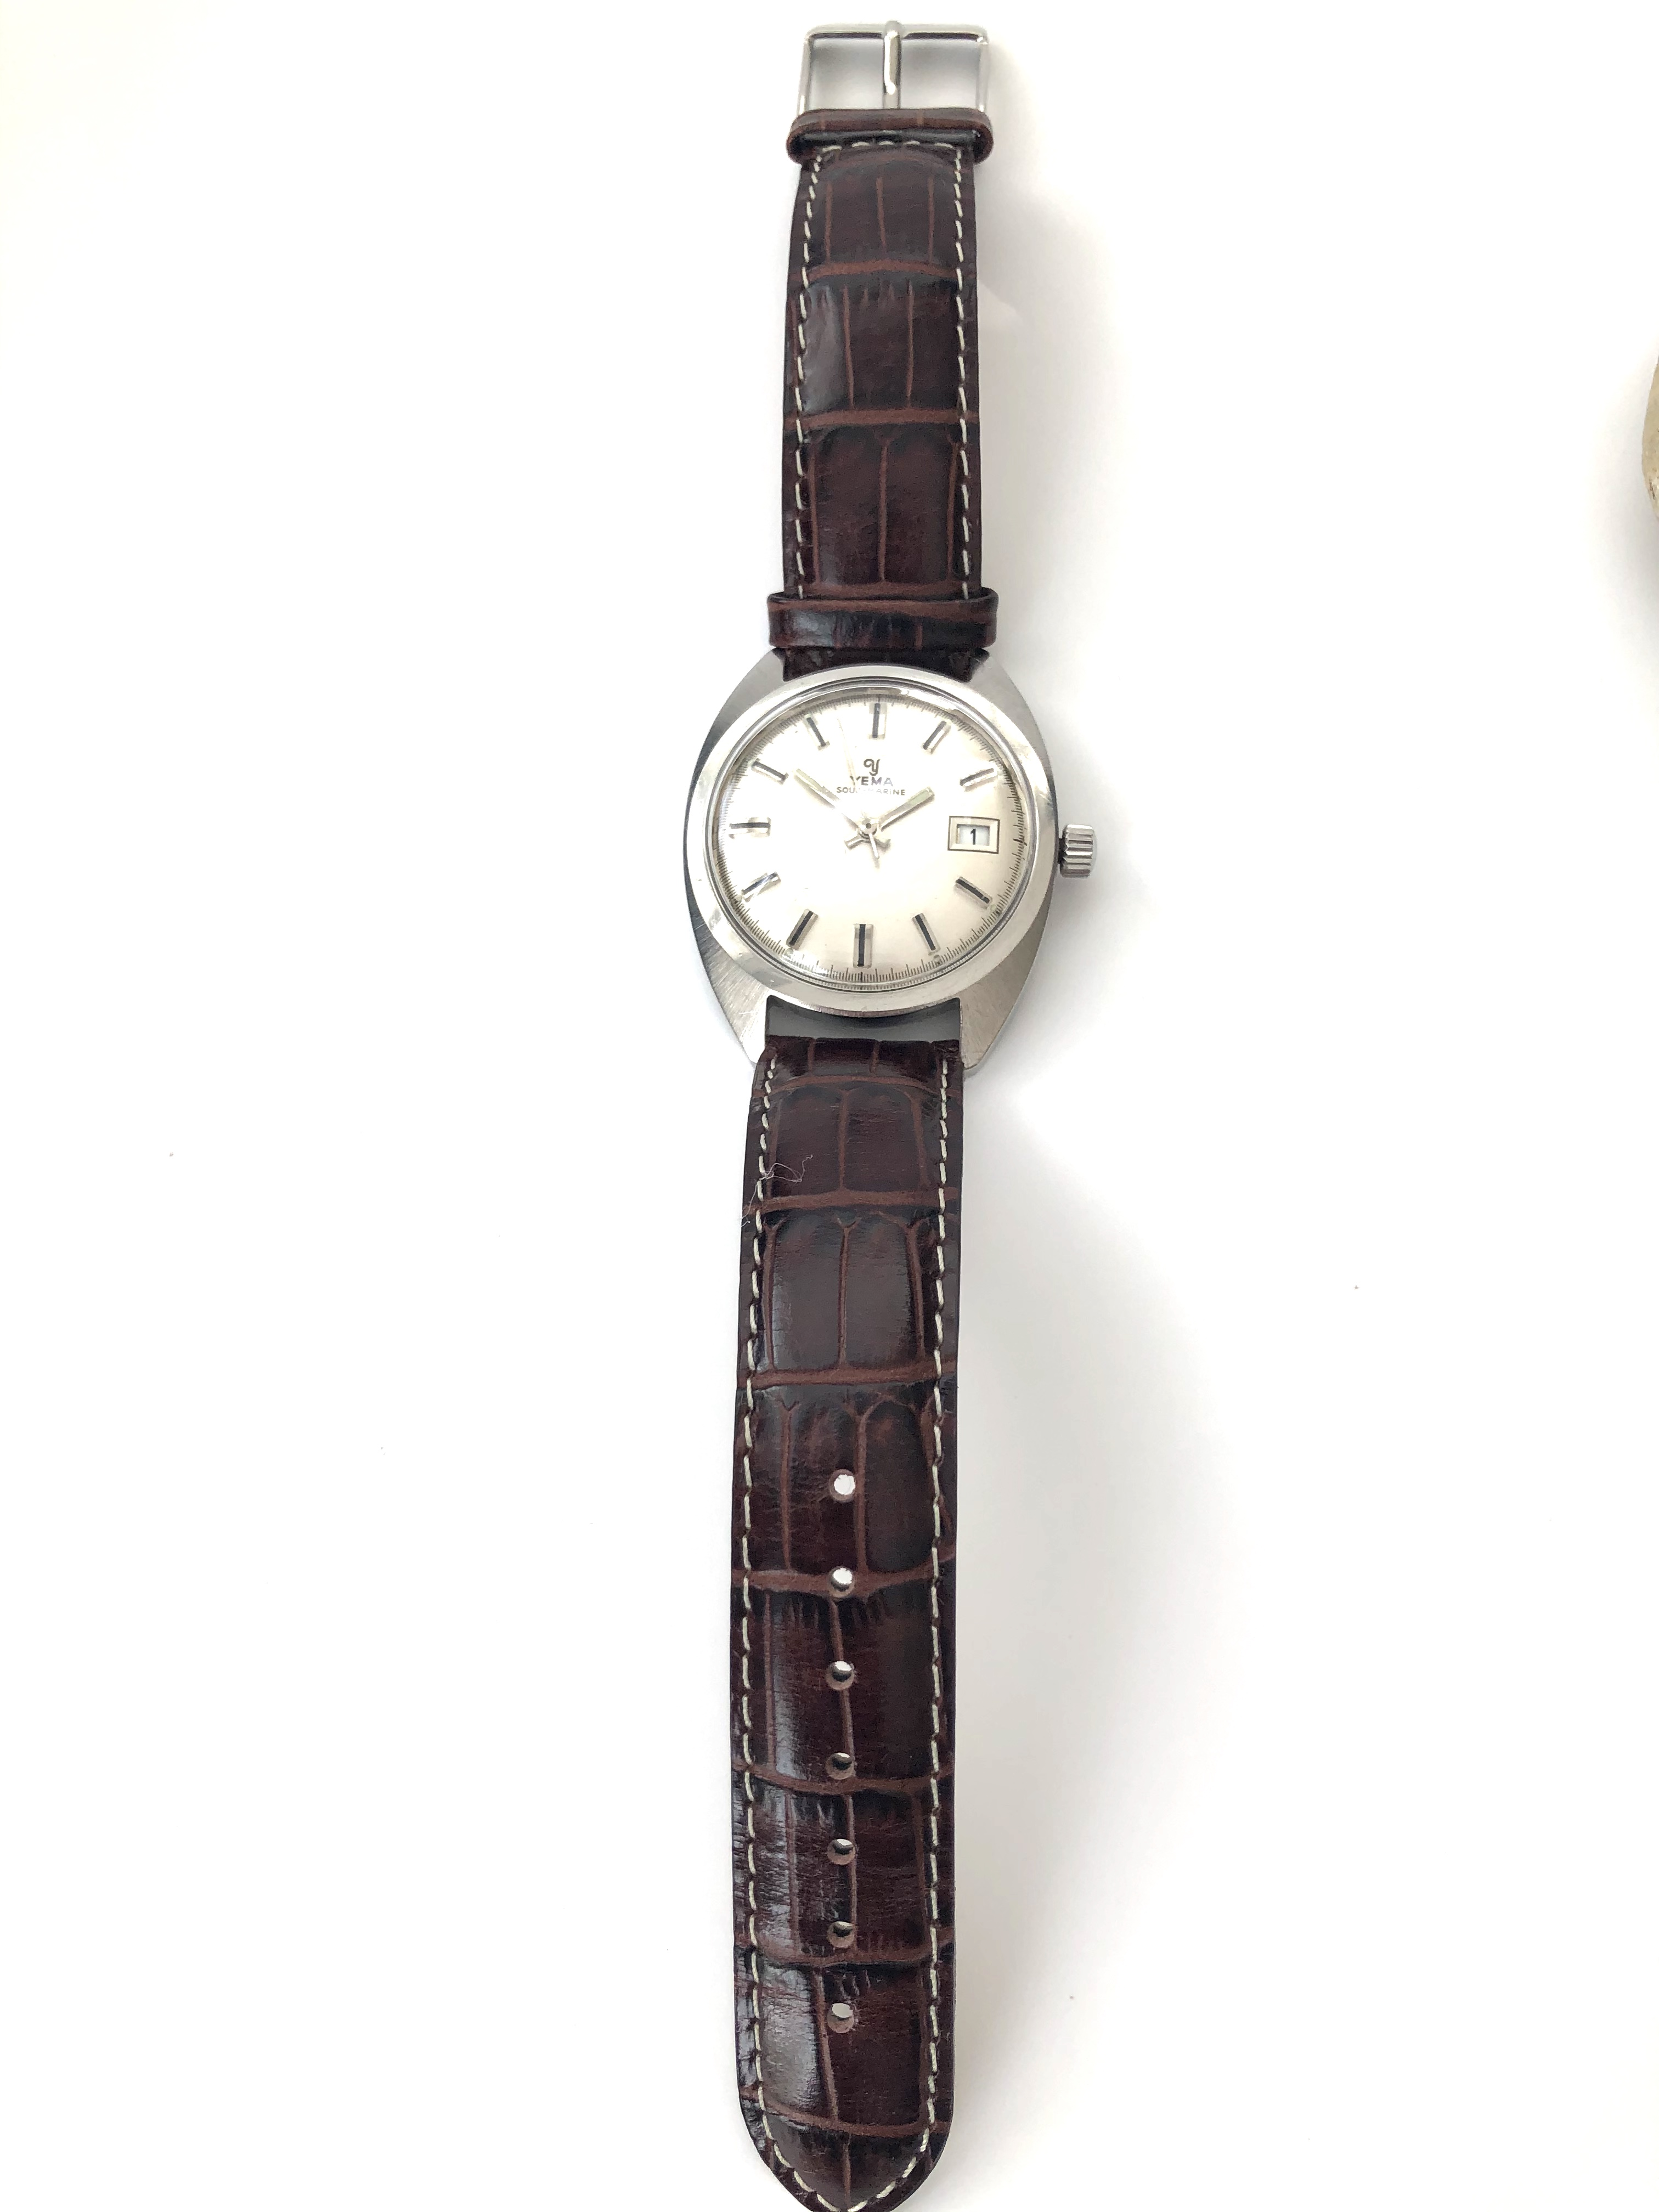 Lot 31 - Beautiful Yema - Sous Marine Watch Circo 1970's in almost mint condition.